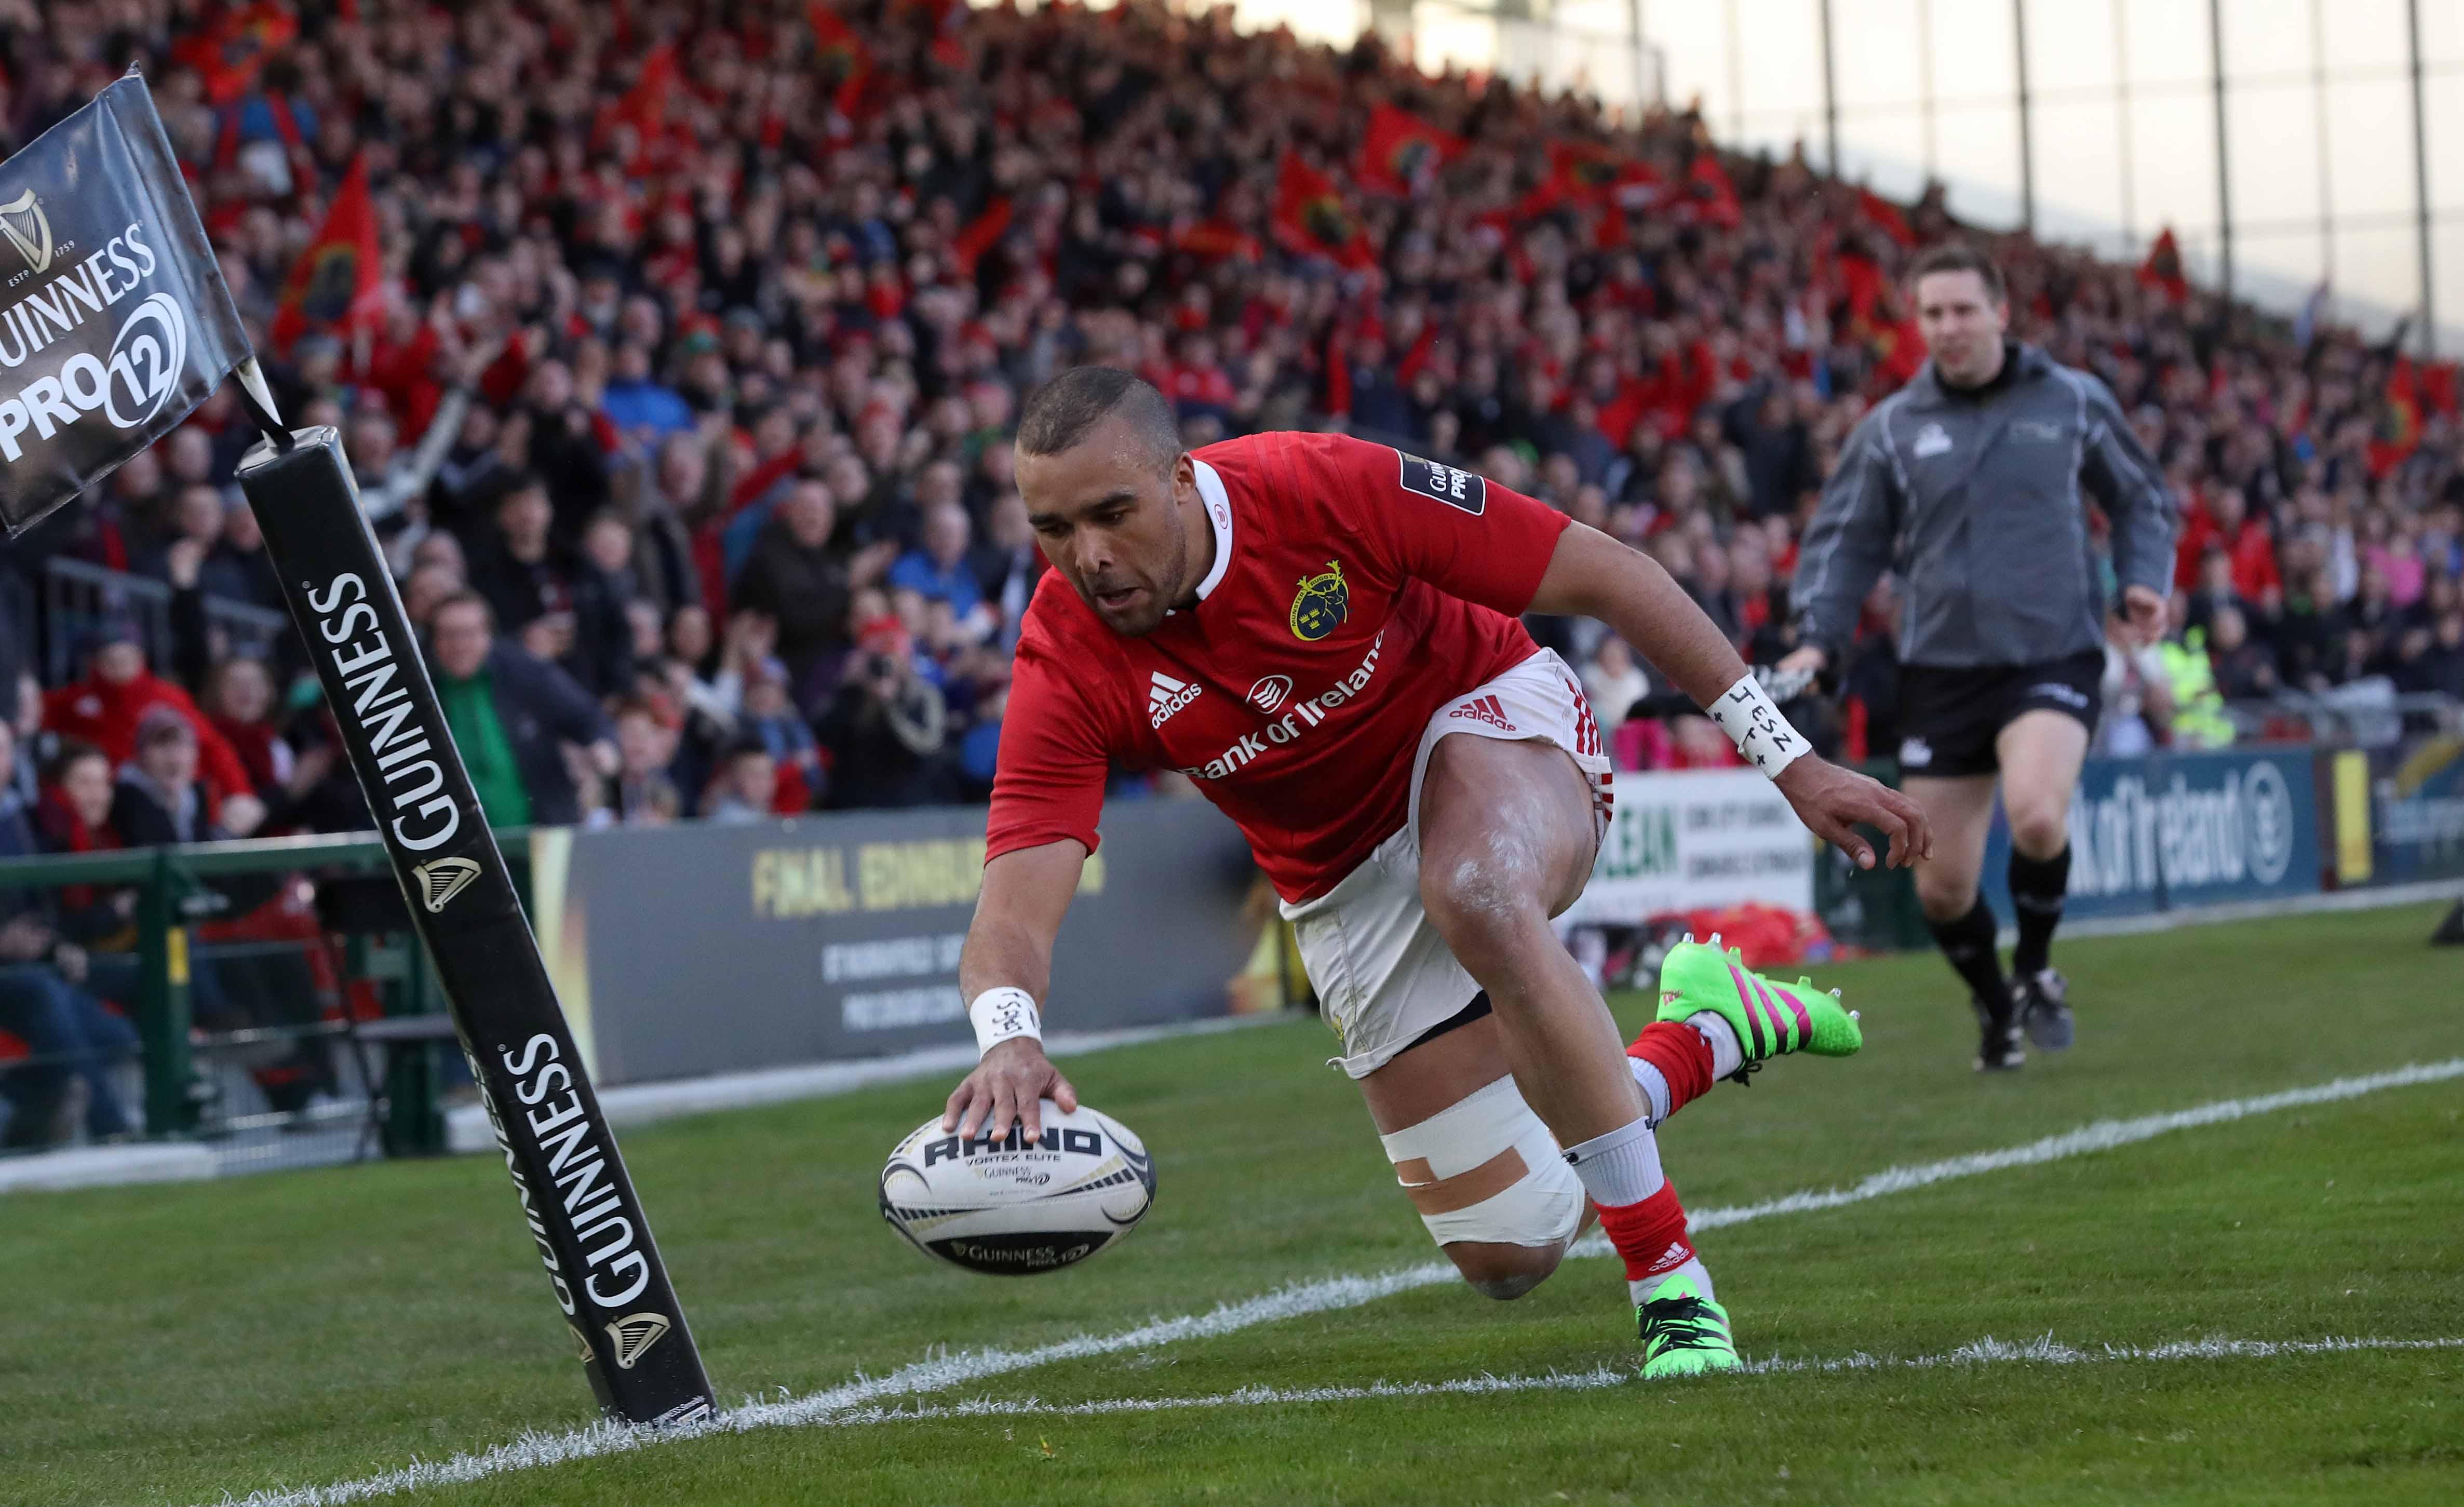 Munster magician Simon Zebo excited by European adventure